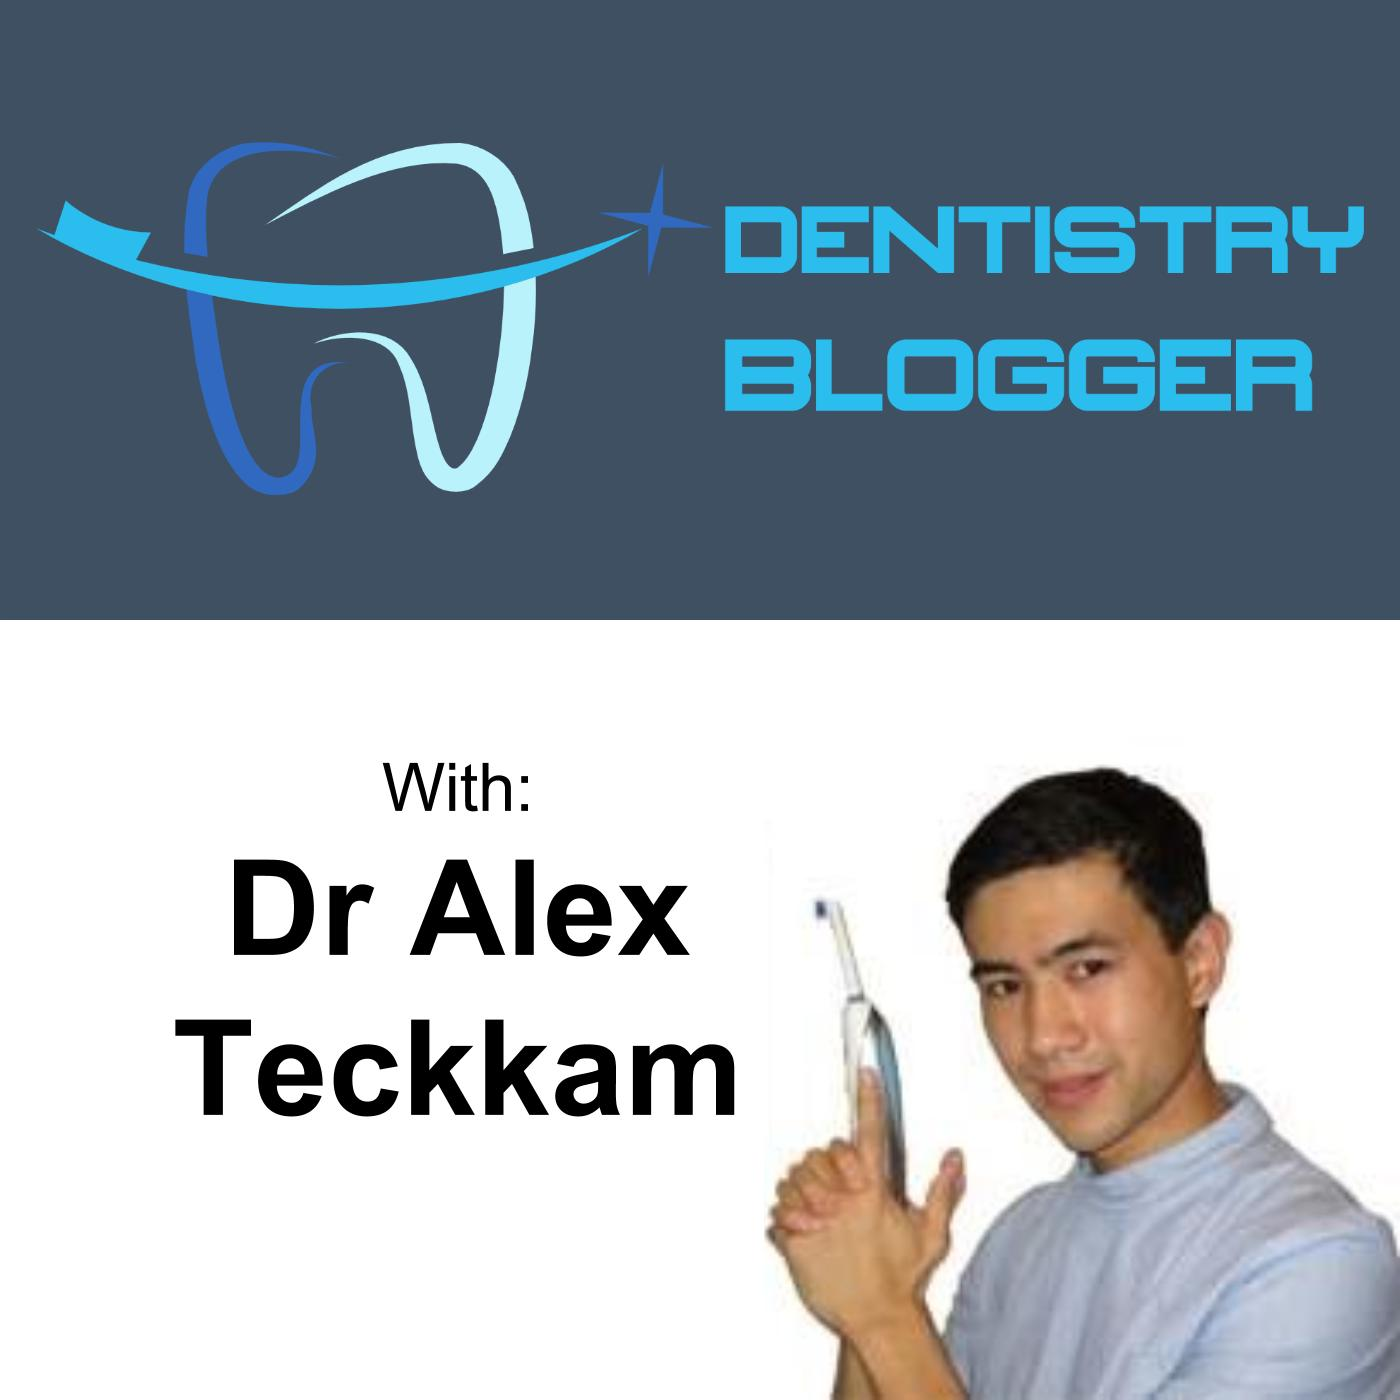 The Dentistry Blogger Podcast: Interviewing Dental Experts from around the Globe